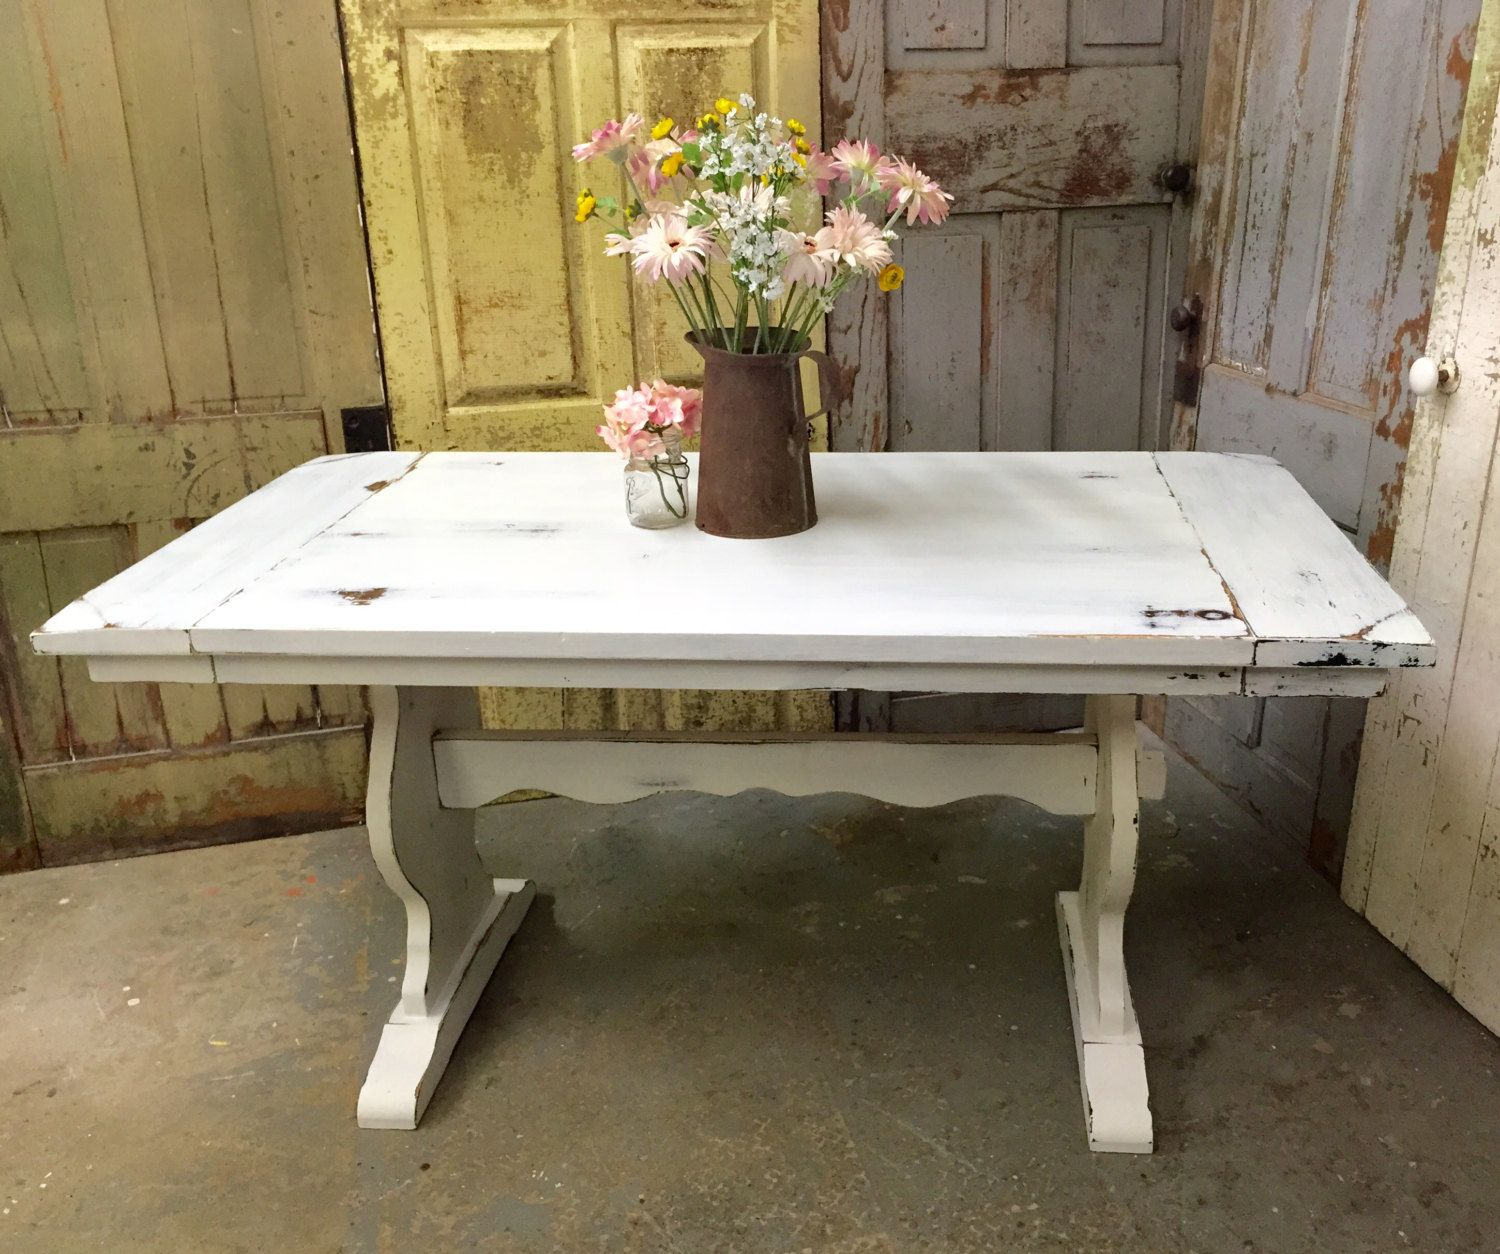 white kitchen tables White Kitchen Table Rustic Dining Room Table Painted Furniture Beach Cottage Furniture